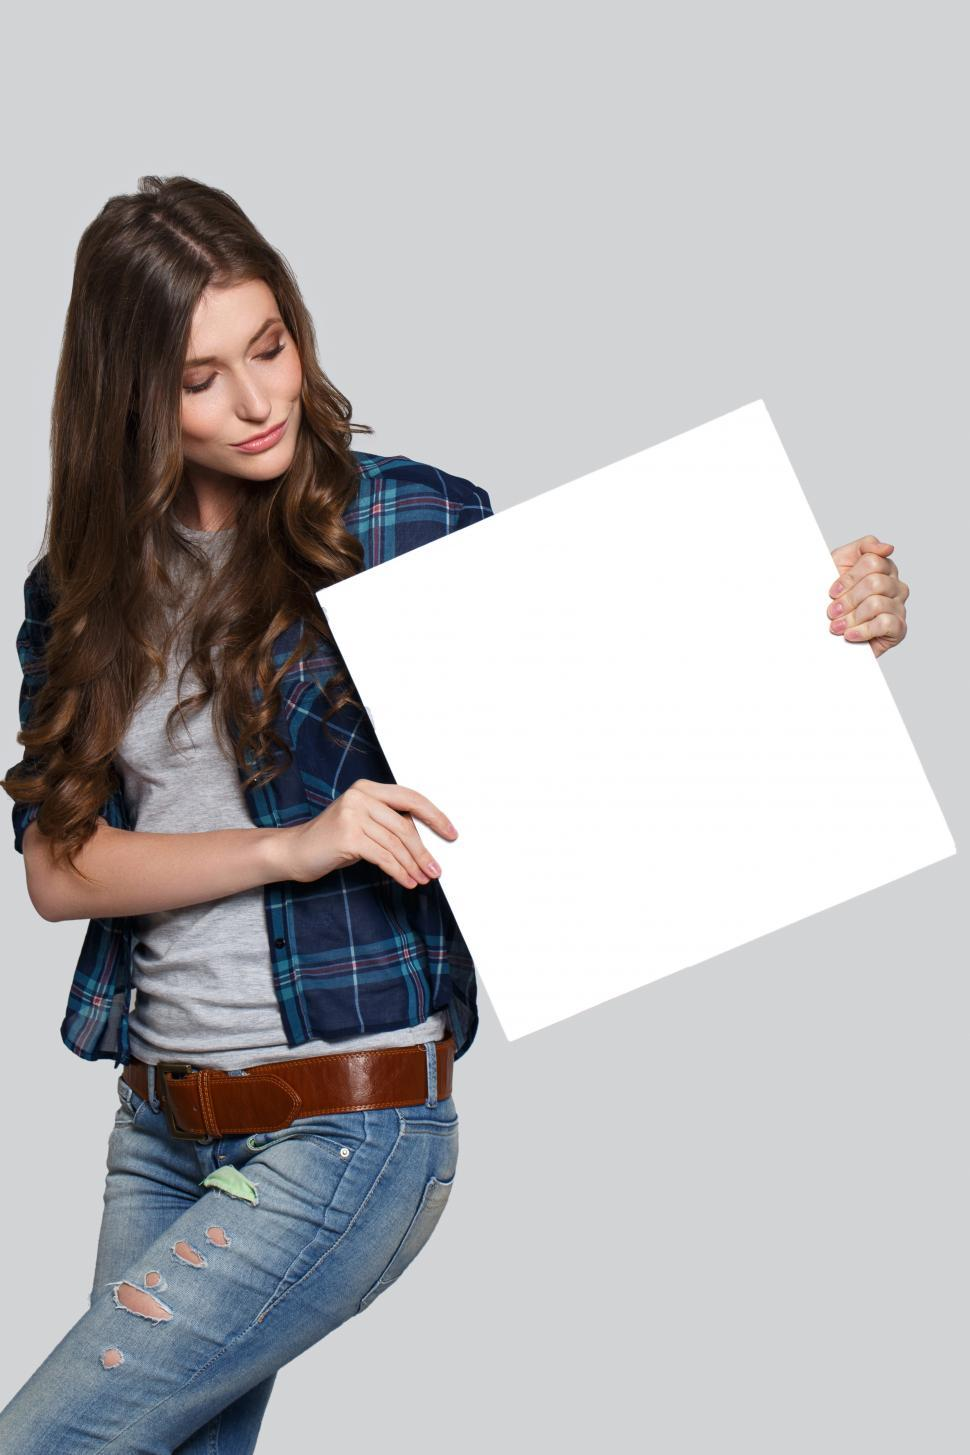 Download Free Stock Photo of Jaunty angle blank sign held by woman